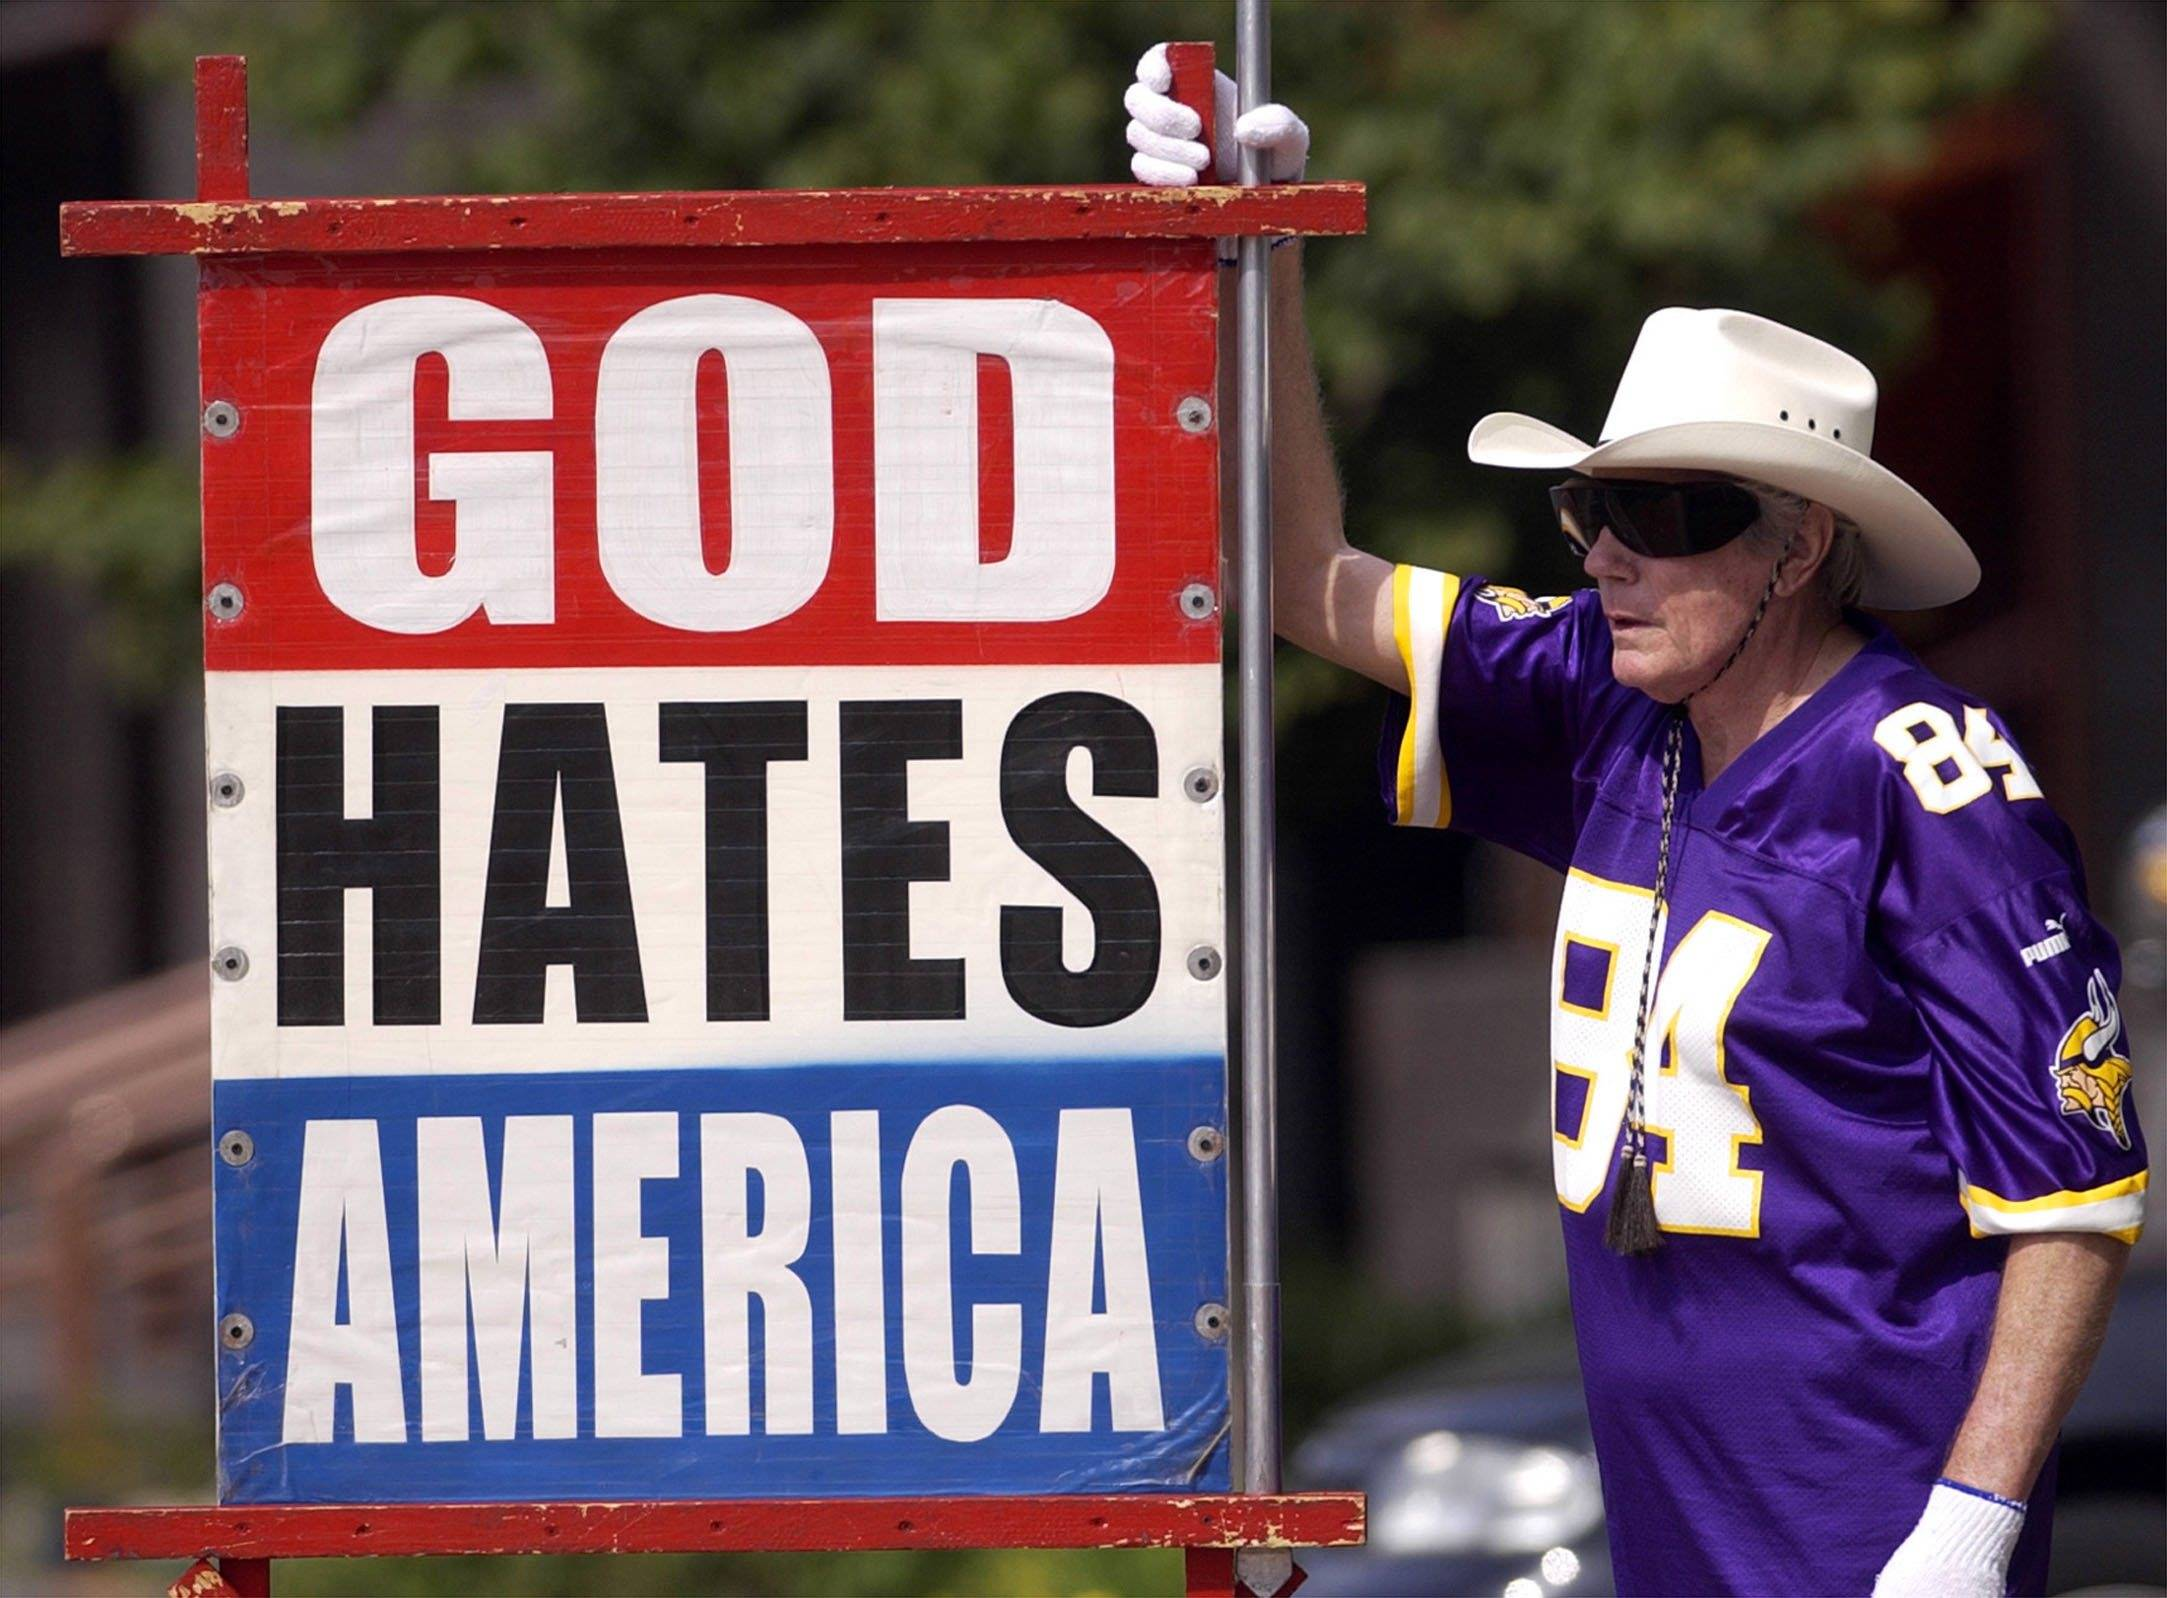 Fred Phelps Sr. displays one of his many infamous protest signs. Phelps, the fiery founder of the Westboro Baptist Church, a small Kansas church, who drew international condemnation for outrageous and hate-filled protests that blamed almost everything, including the deaths of AIDS victims and U.S. soldiers, on America's tolerance for gay people, died Thursday. He was 84.